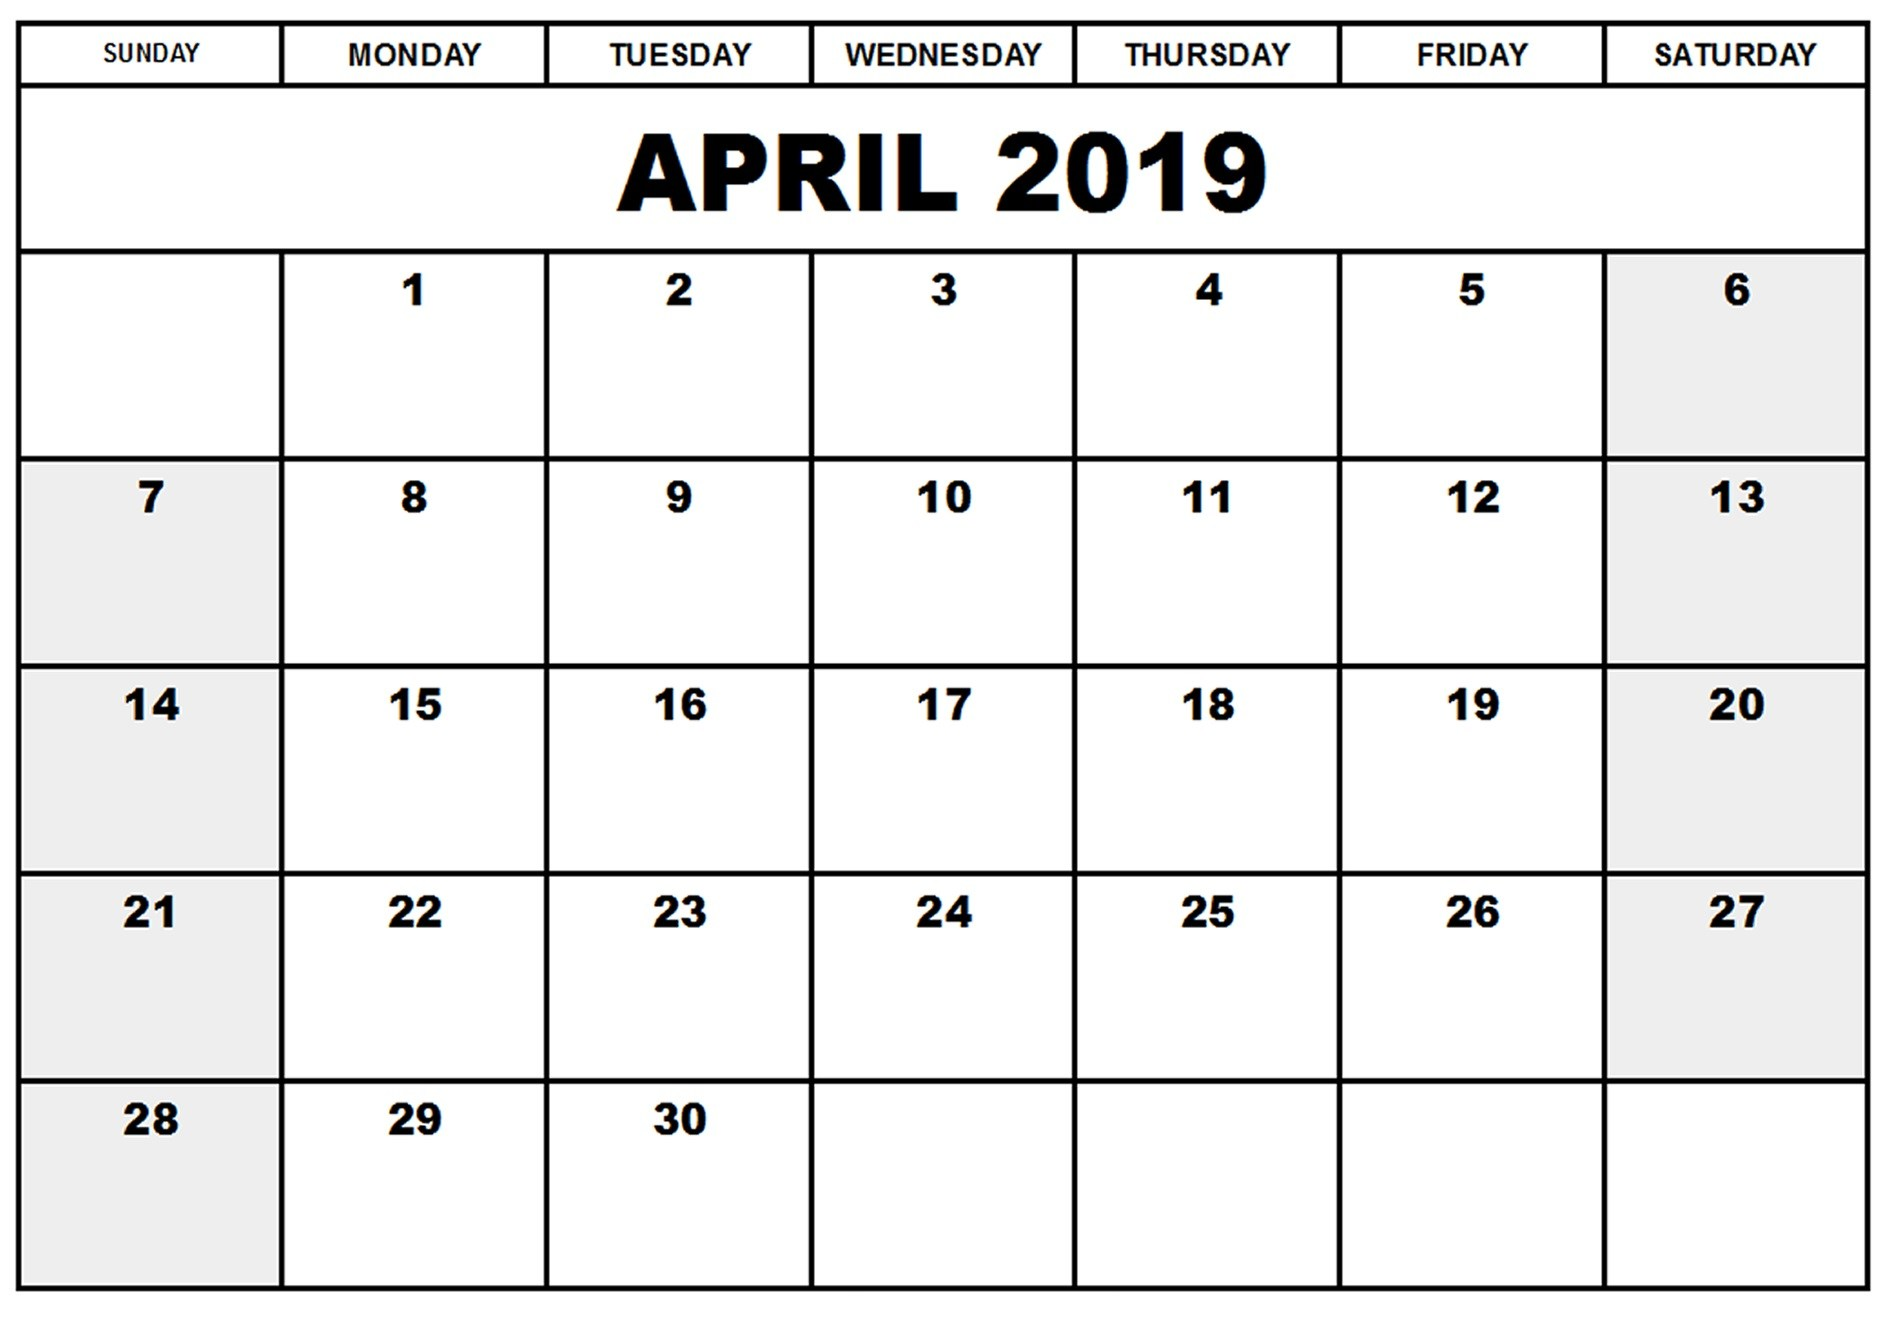 April 2019 Calendar Document